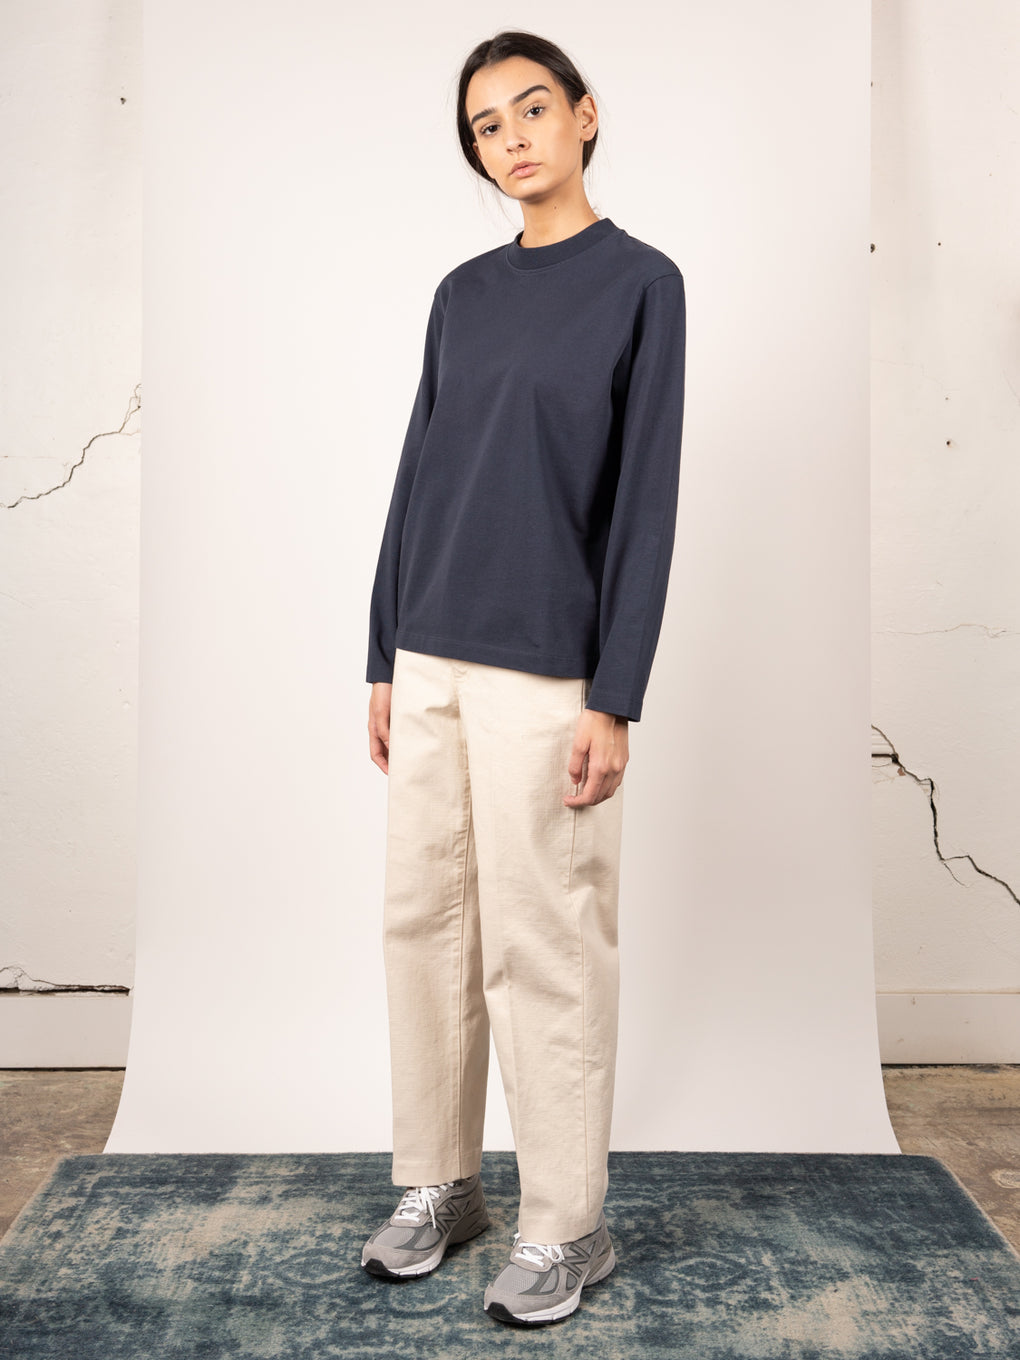 Womens relaxed fit, long sleeved tshirt in navy from Norse Projects Womens